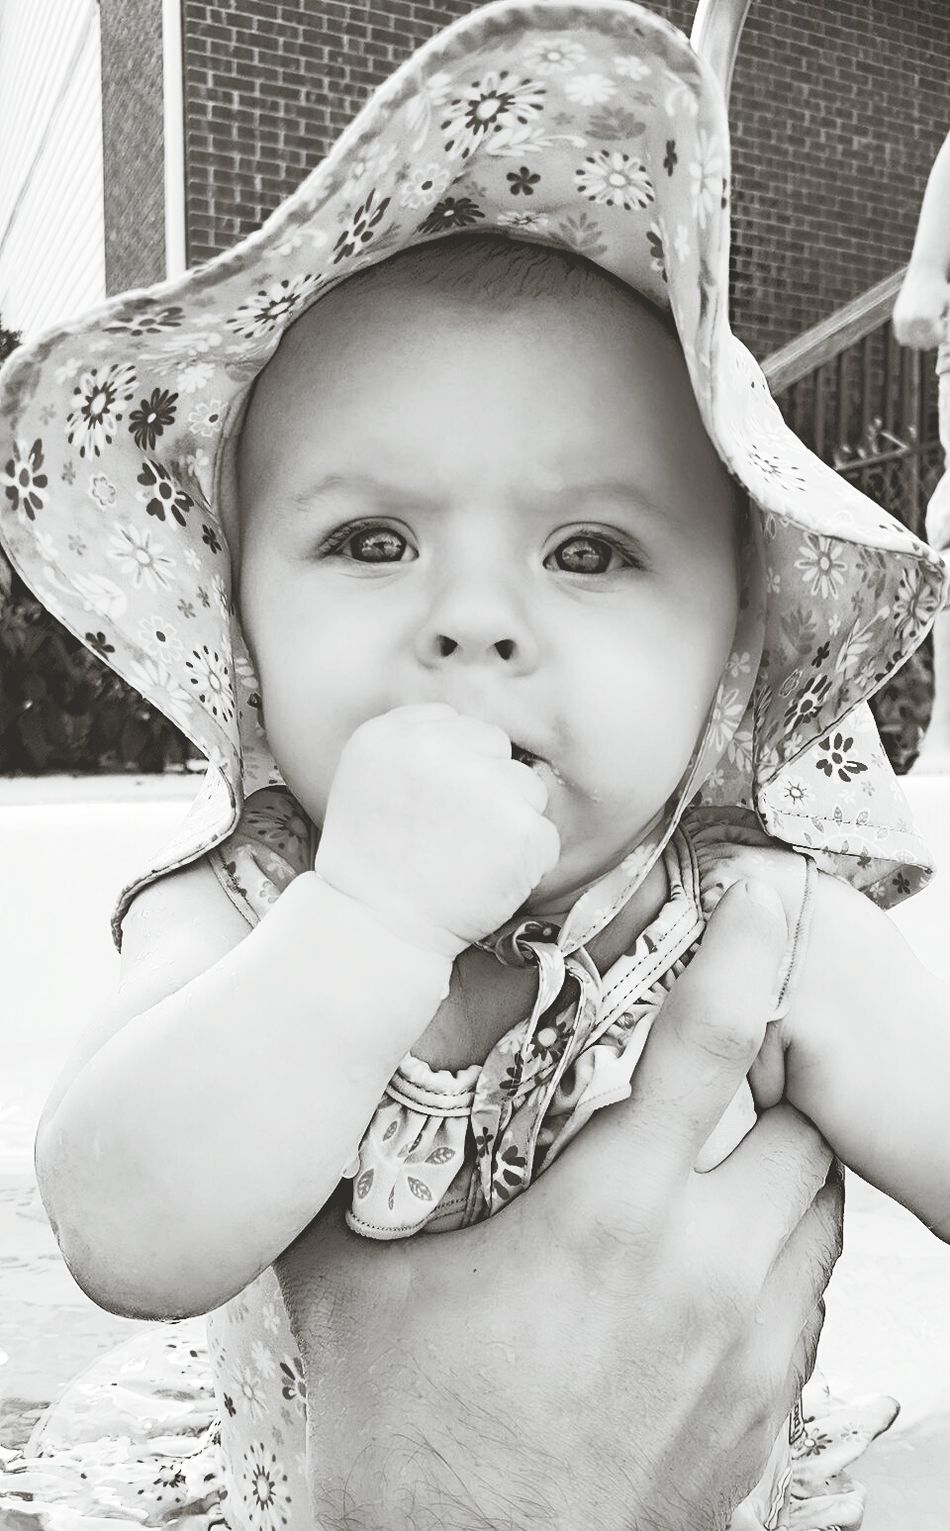 Baby Summer Baby Swimming Babyswimming First Swim Cambriejoanna Blue Eyed Girl Daughter Summertime Summer Sunshine Blackandwhite Baby Girl Beautiful Beauty Infant Cute Adorable